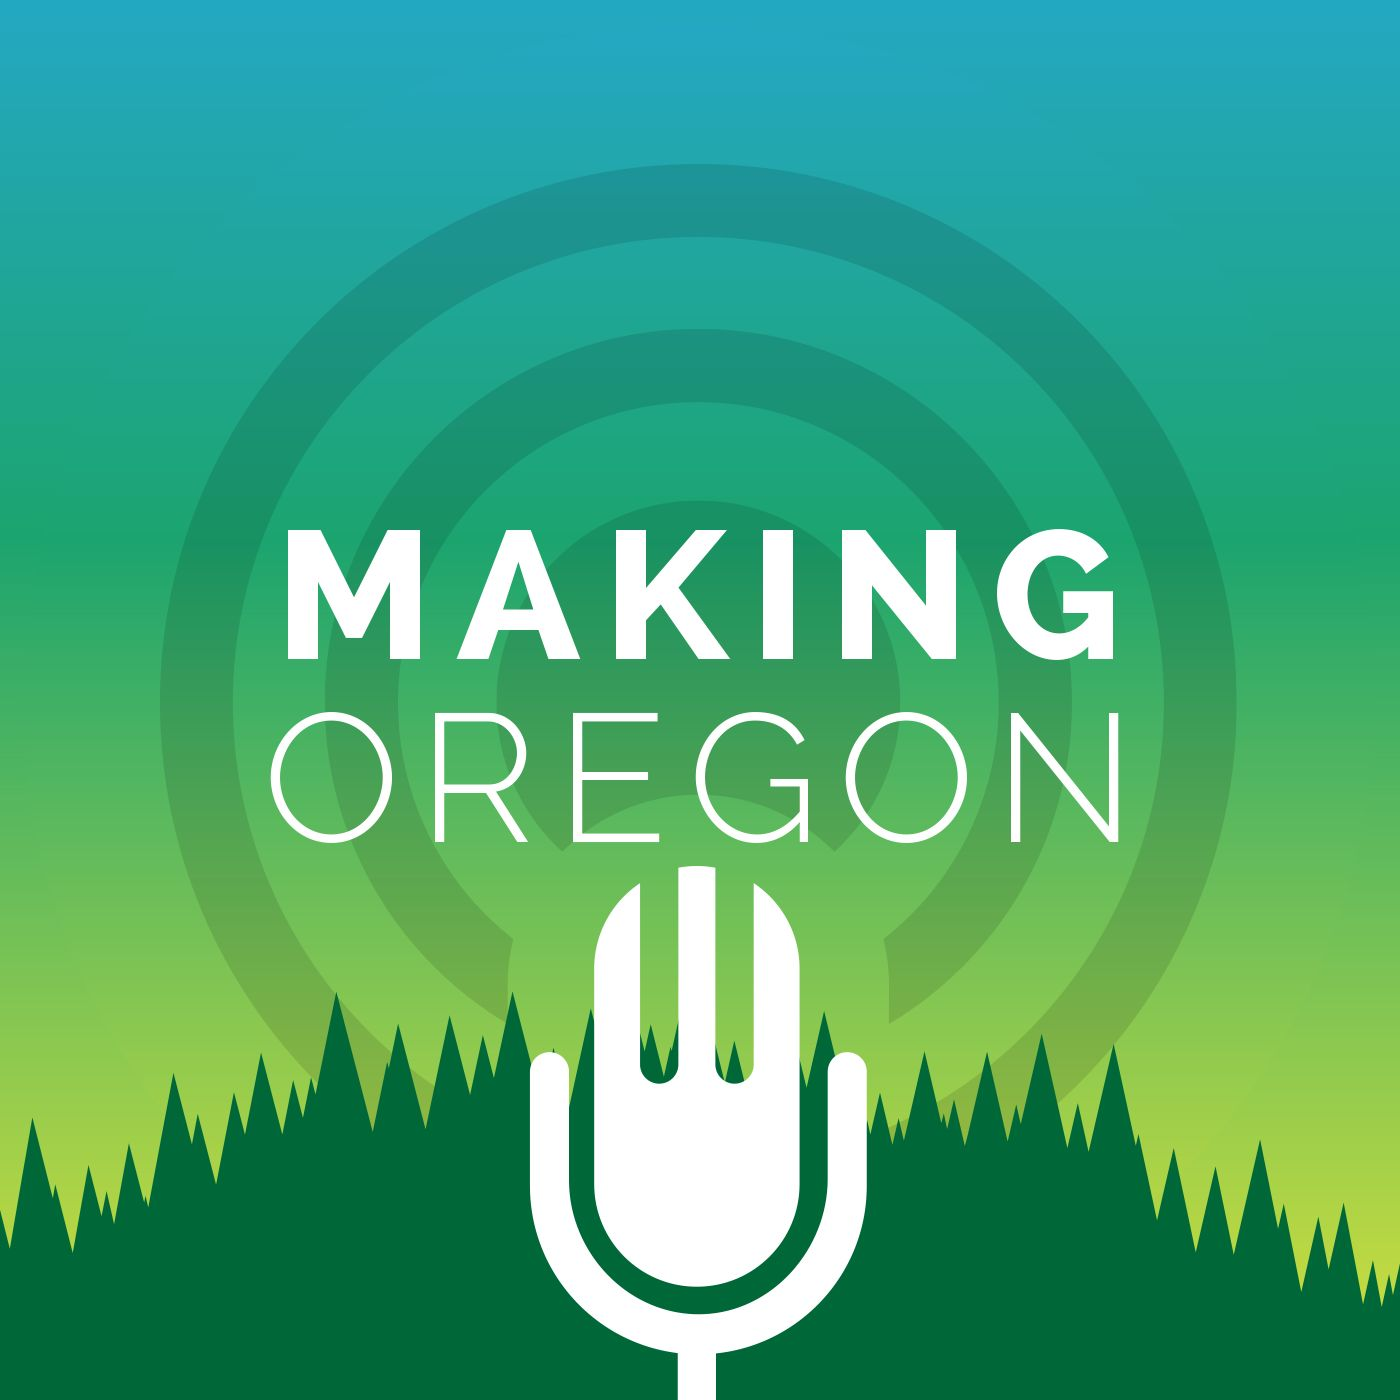 Making Oregon